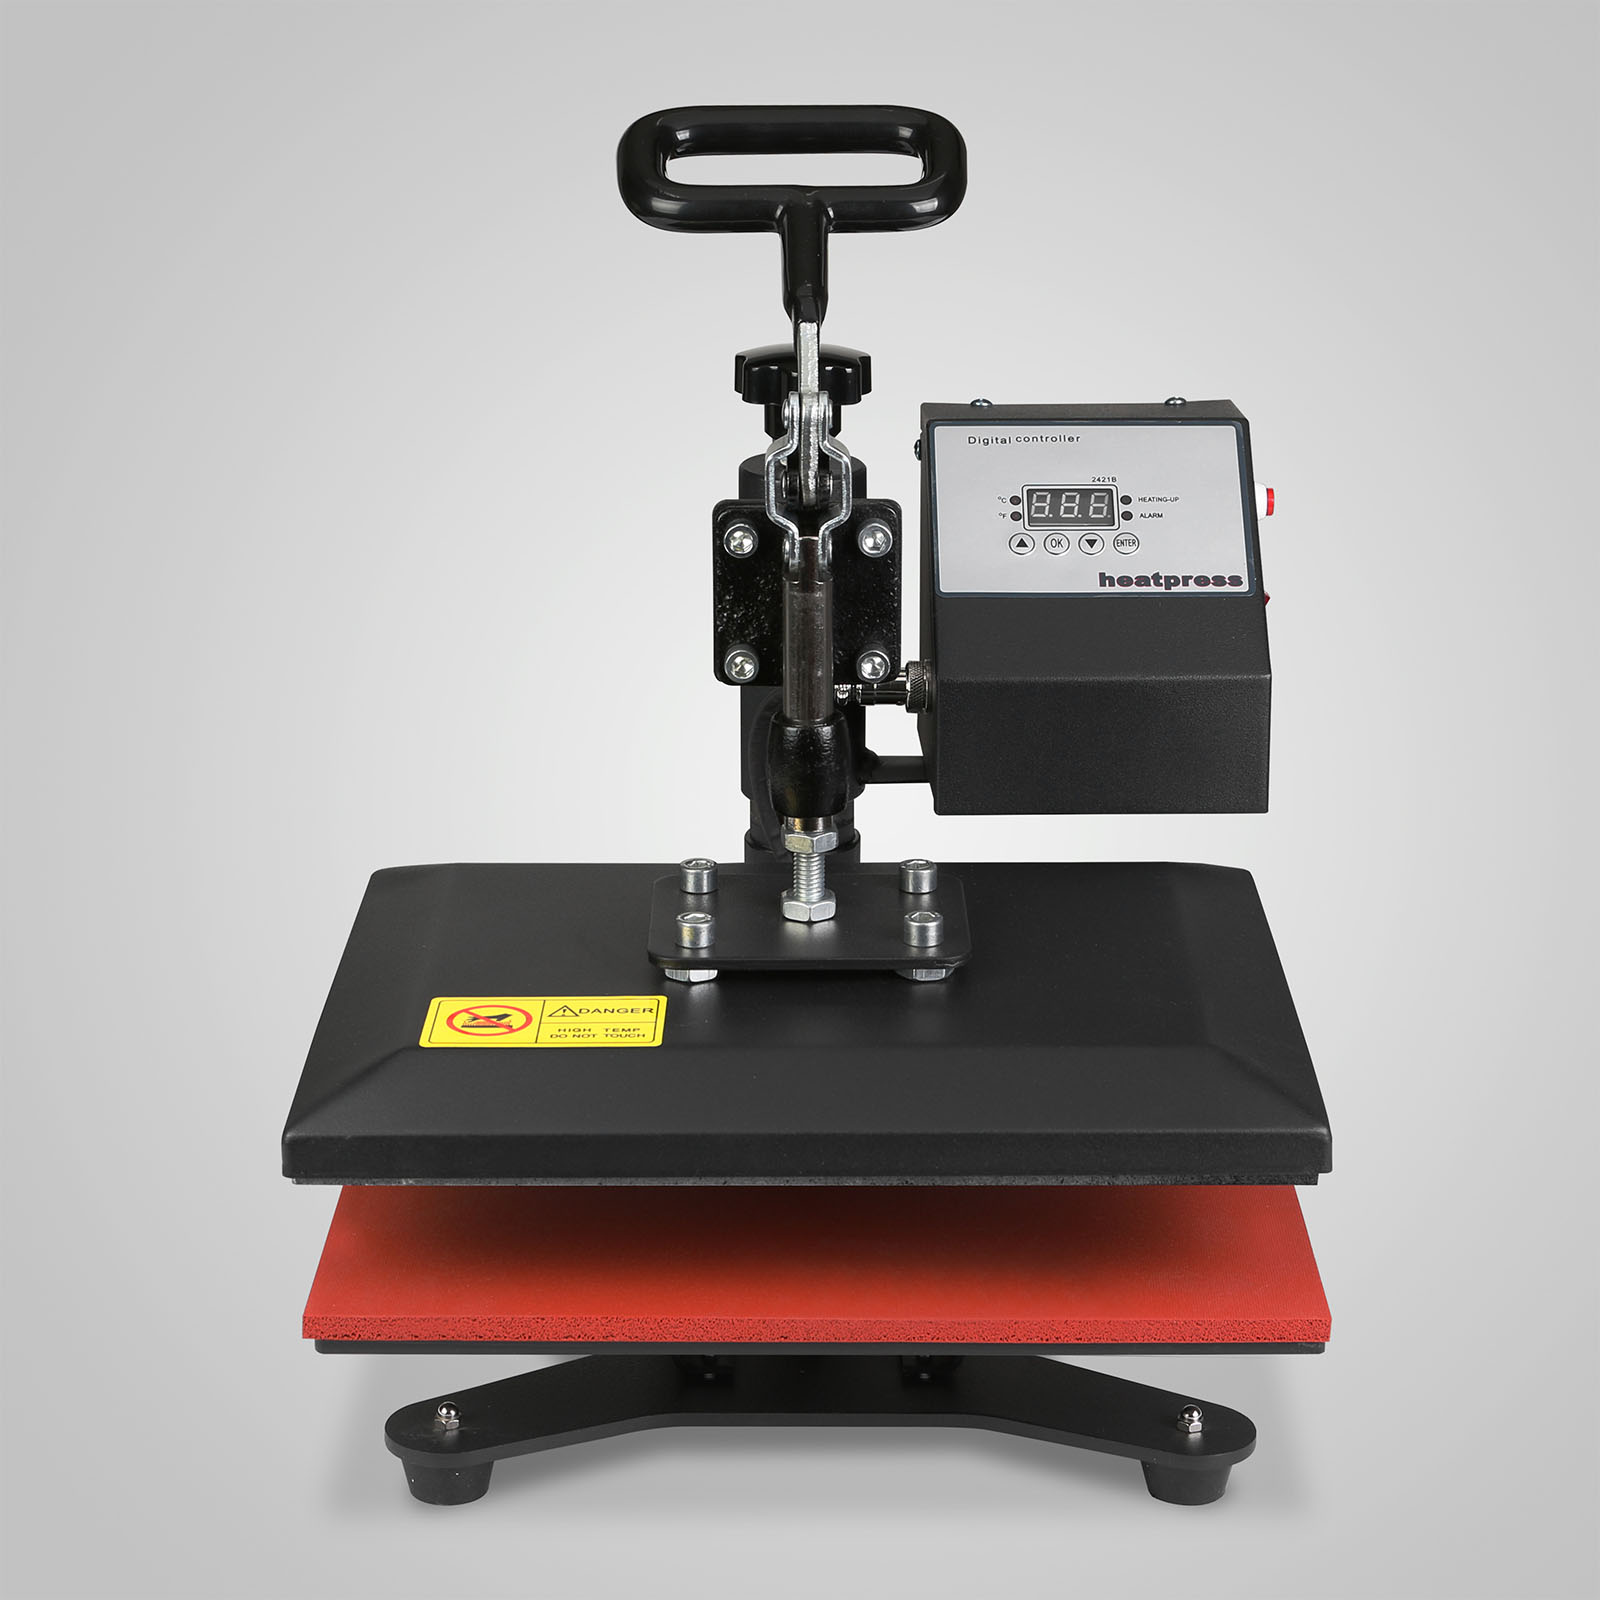 Digital Transfer Swing Away Heat Press Machine 12